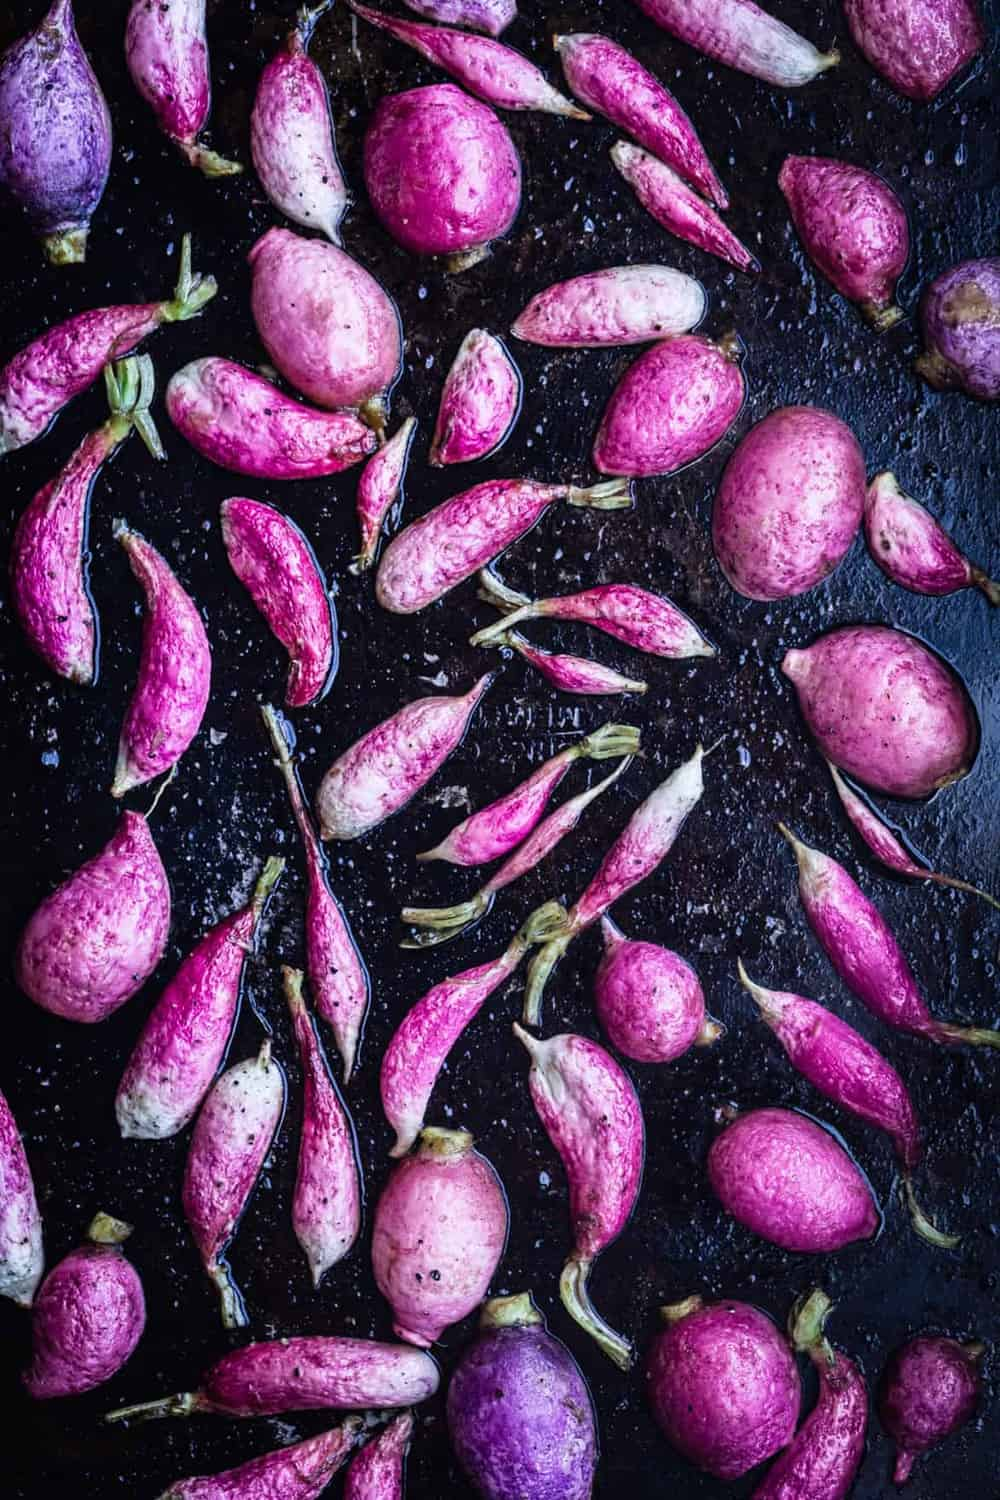 Radishes right out of the oven, close up and overhead shot.